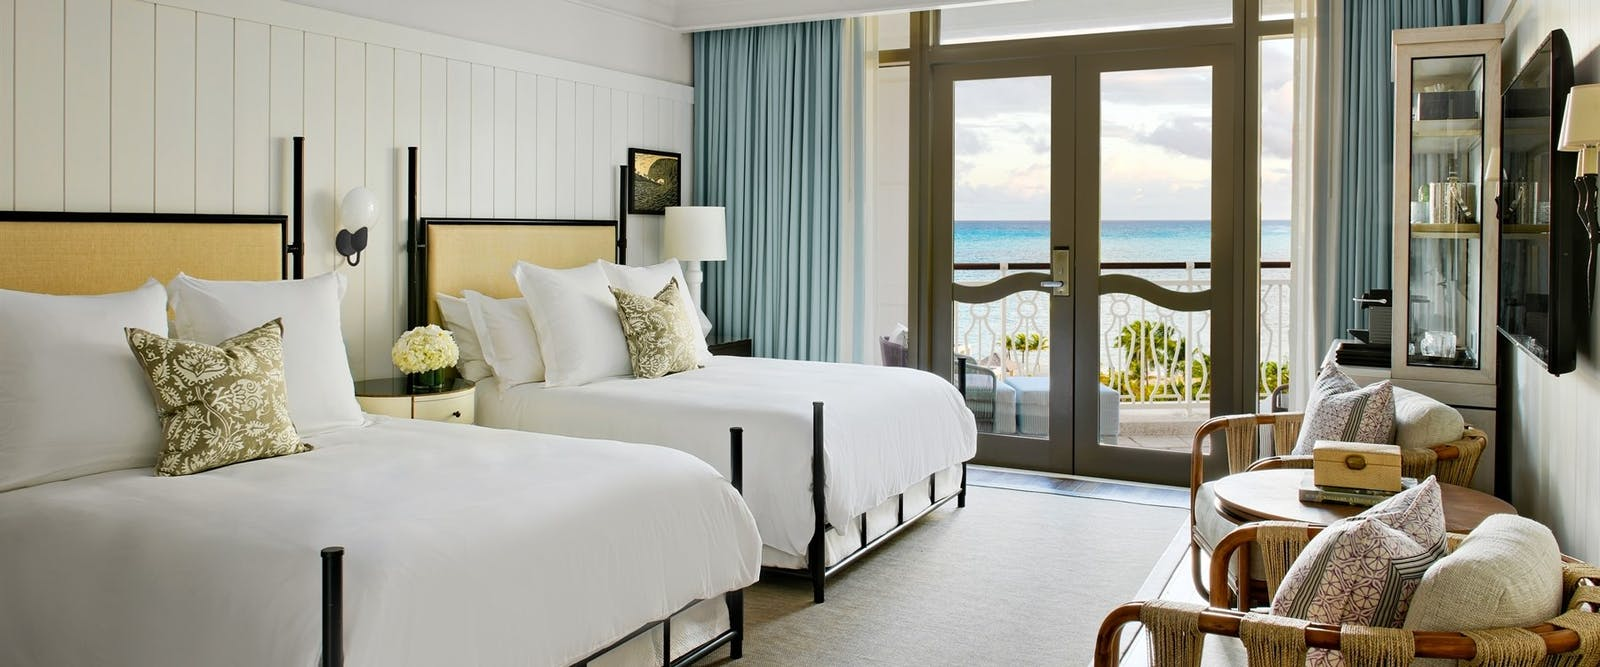 Queen Room at Rosewood Baha Mar, Bahamas, Caribbean